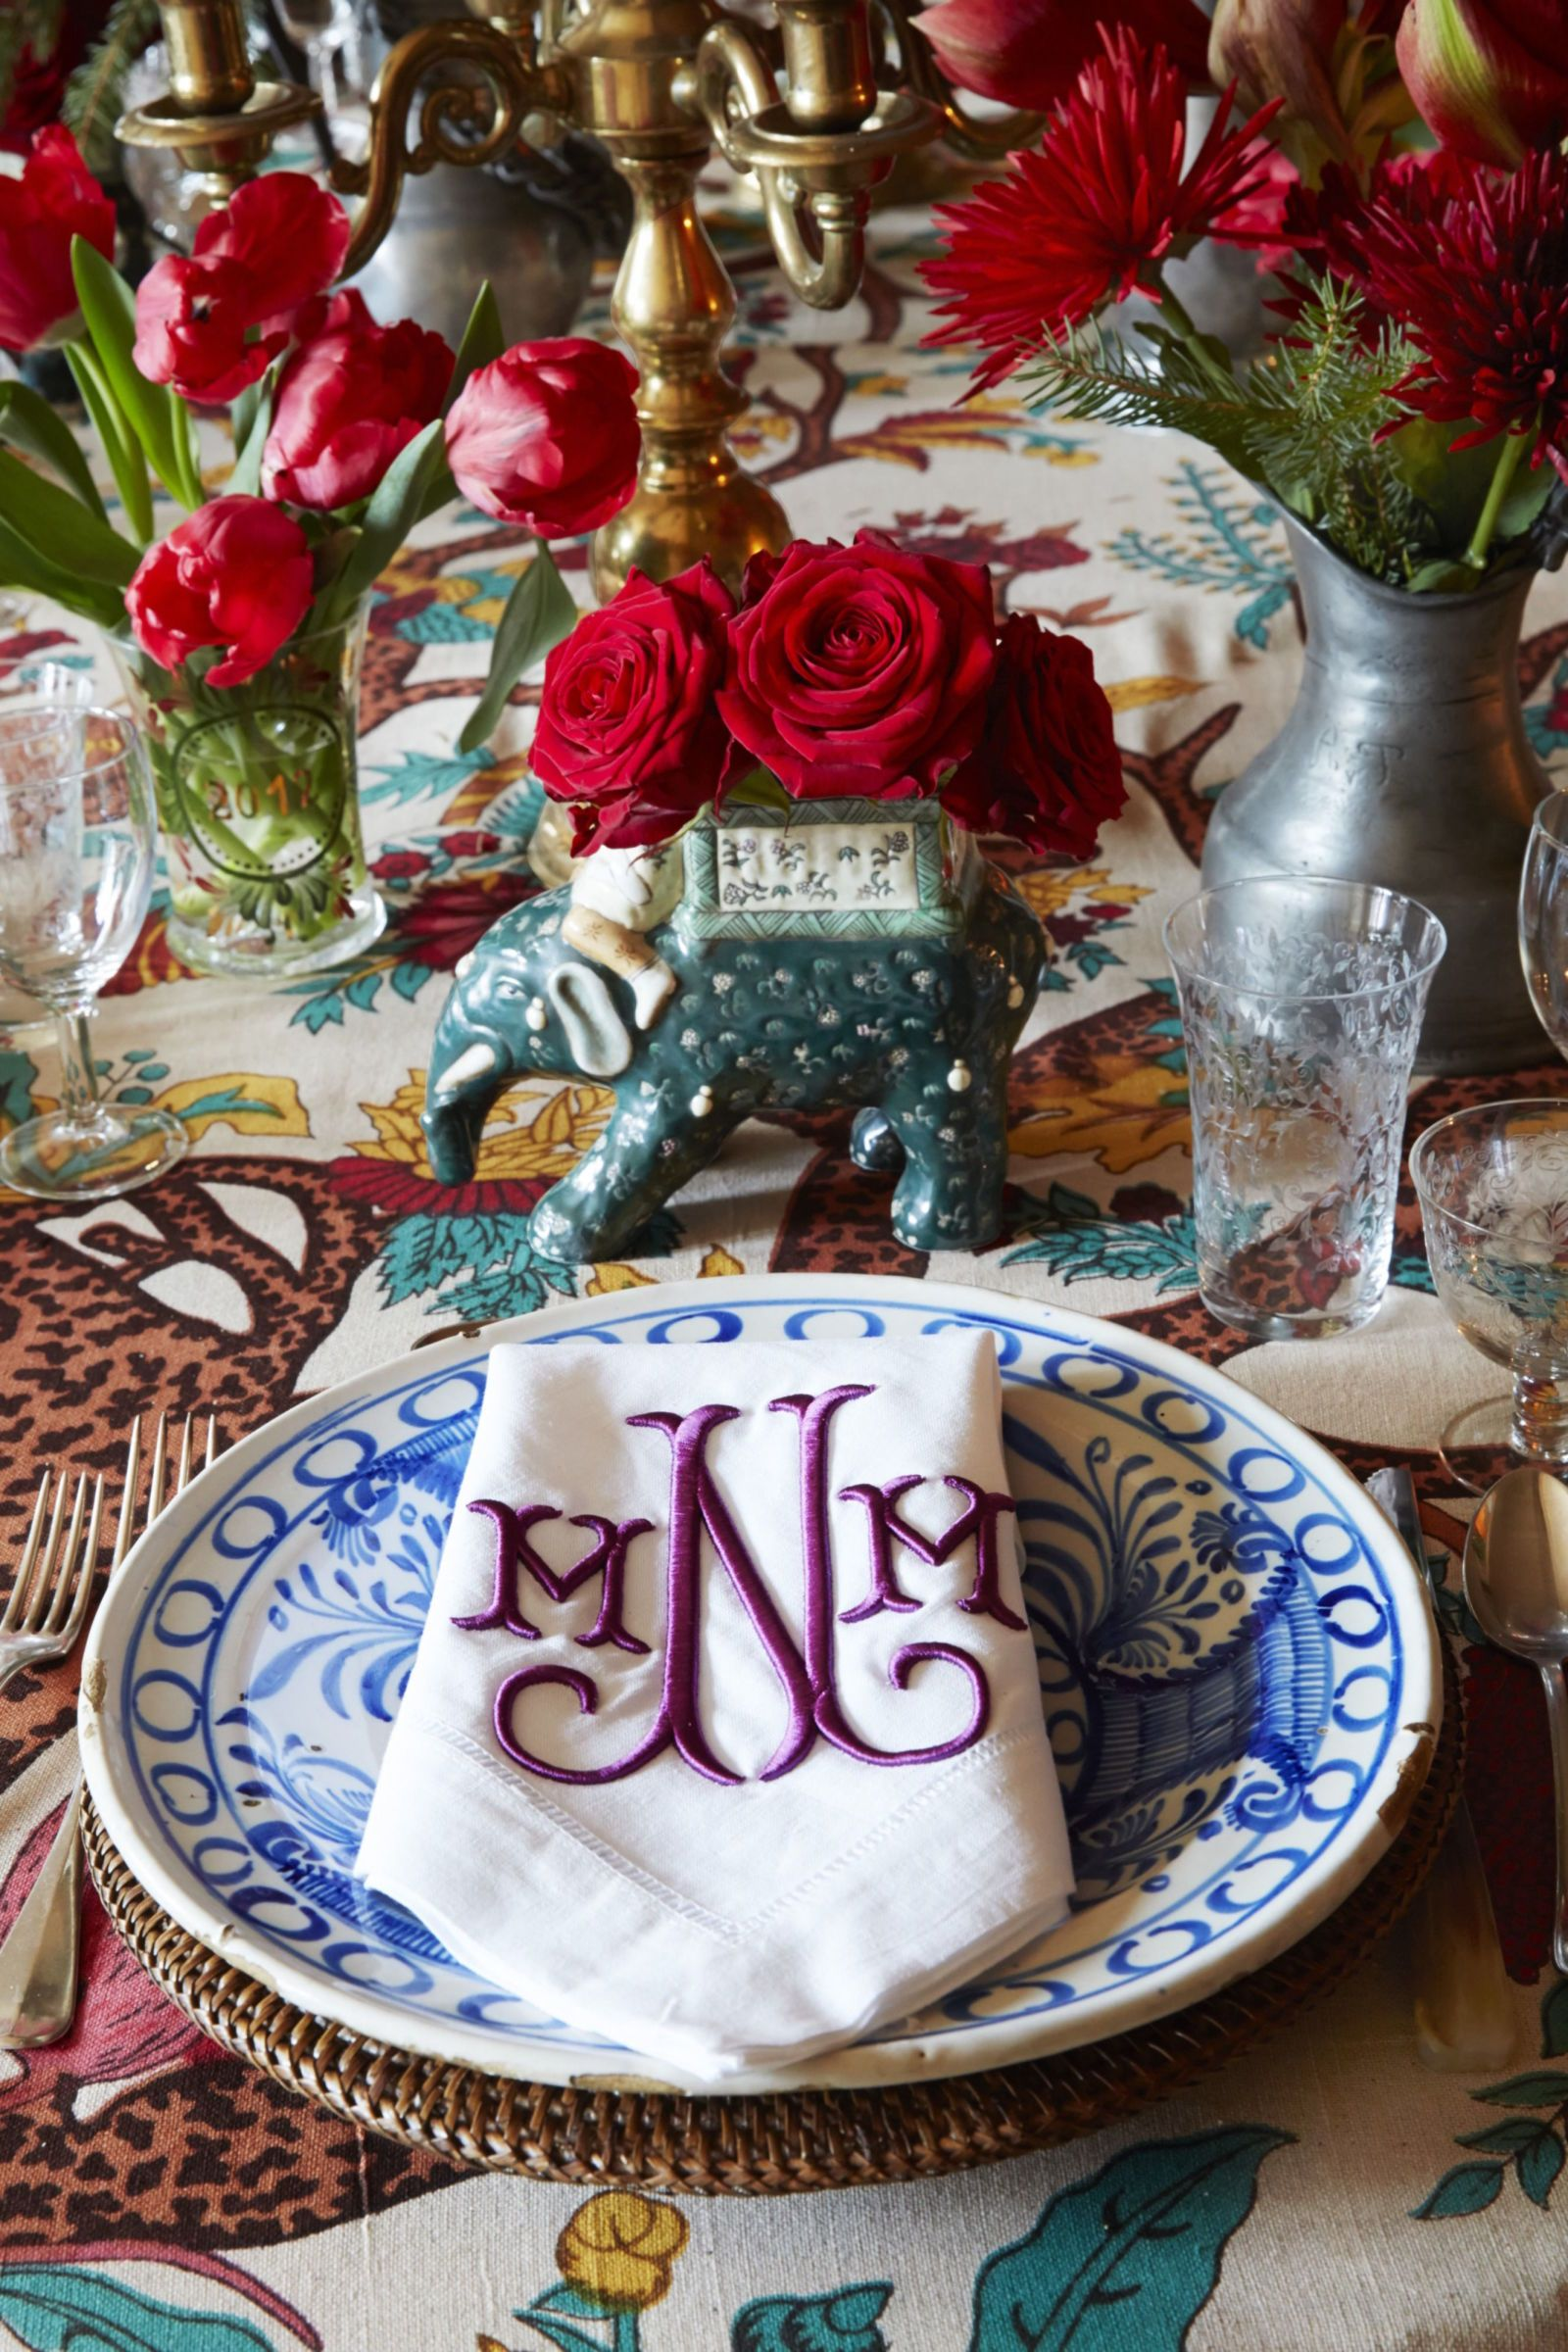 10 Unique Place Settings For Your Holiday Table & 10 Unique Place Settings For Your Holiday Table   Holiday tables ...